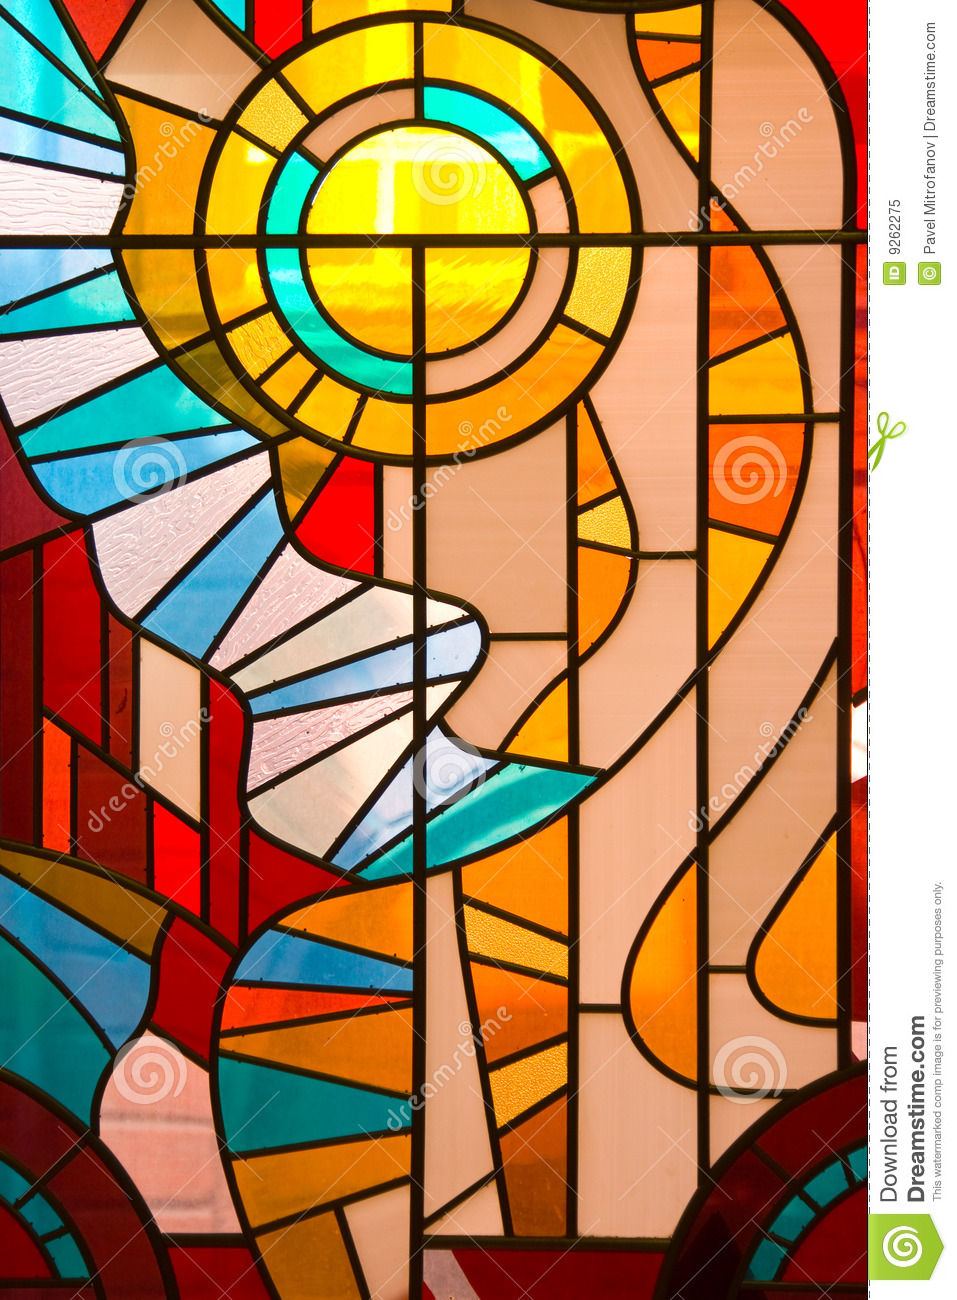 free clipart stained glass window - photo #11